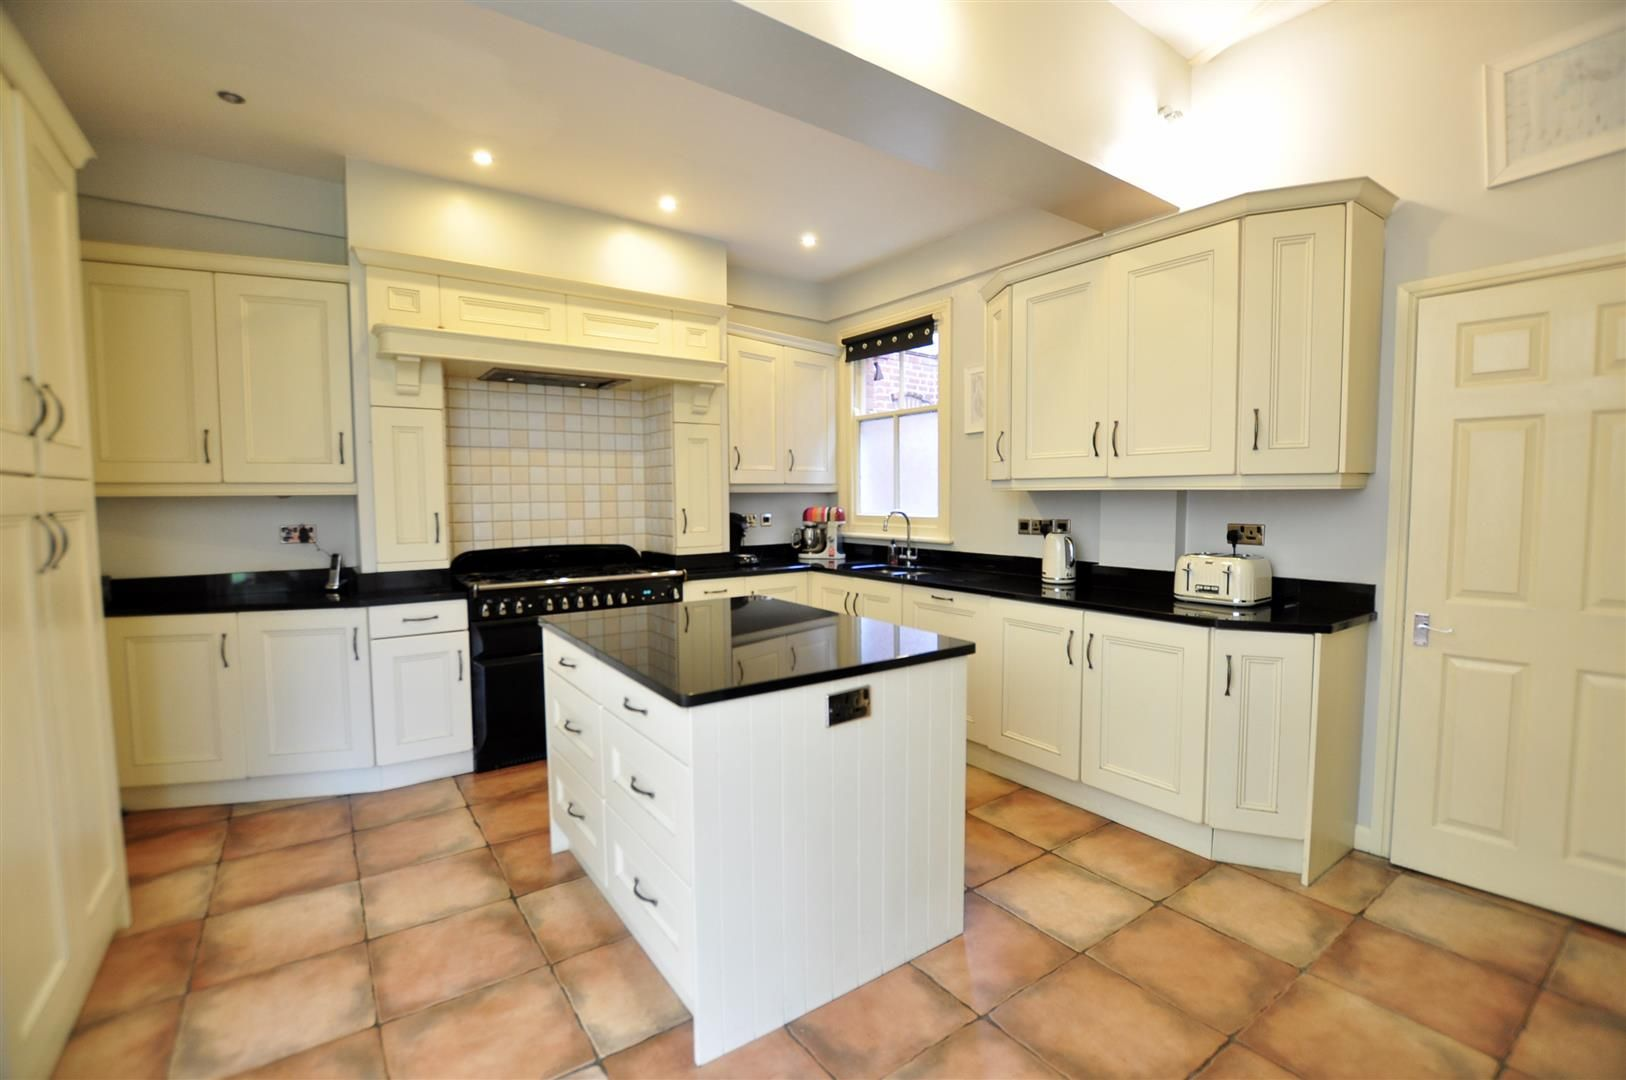 5 bed detached for sale in Hagley  - Property Image 10